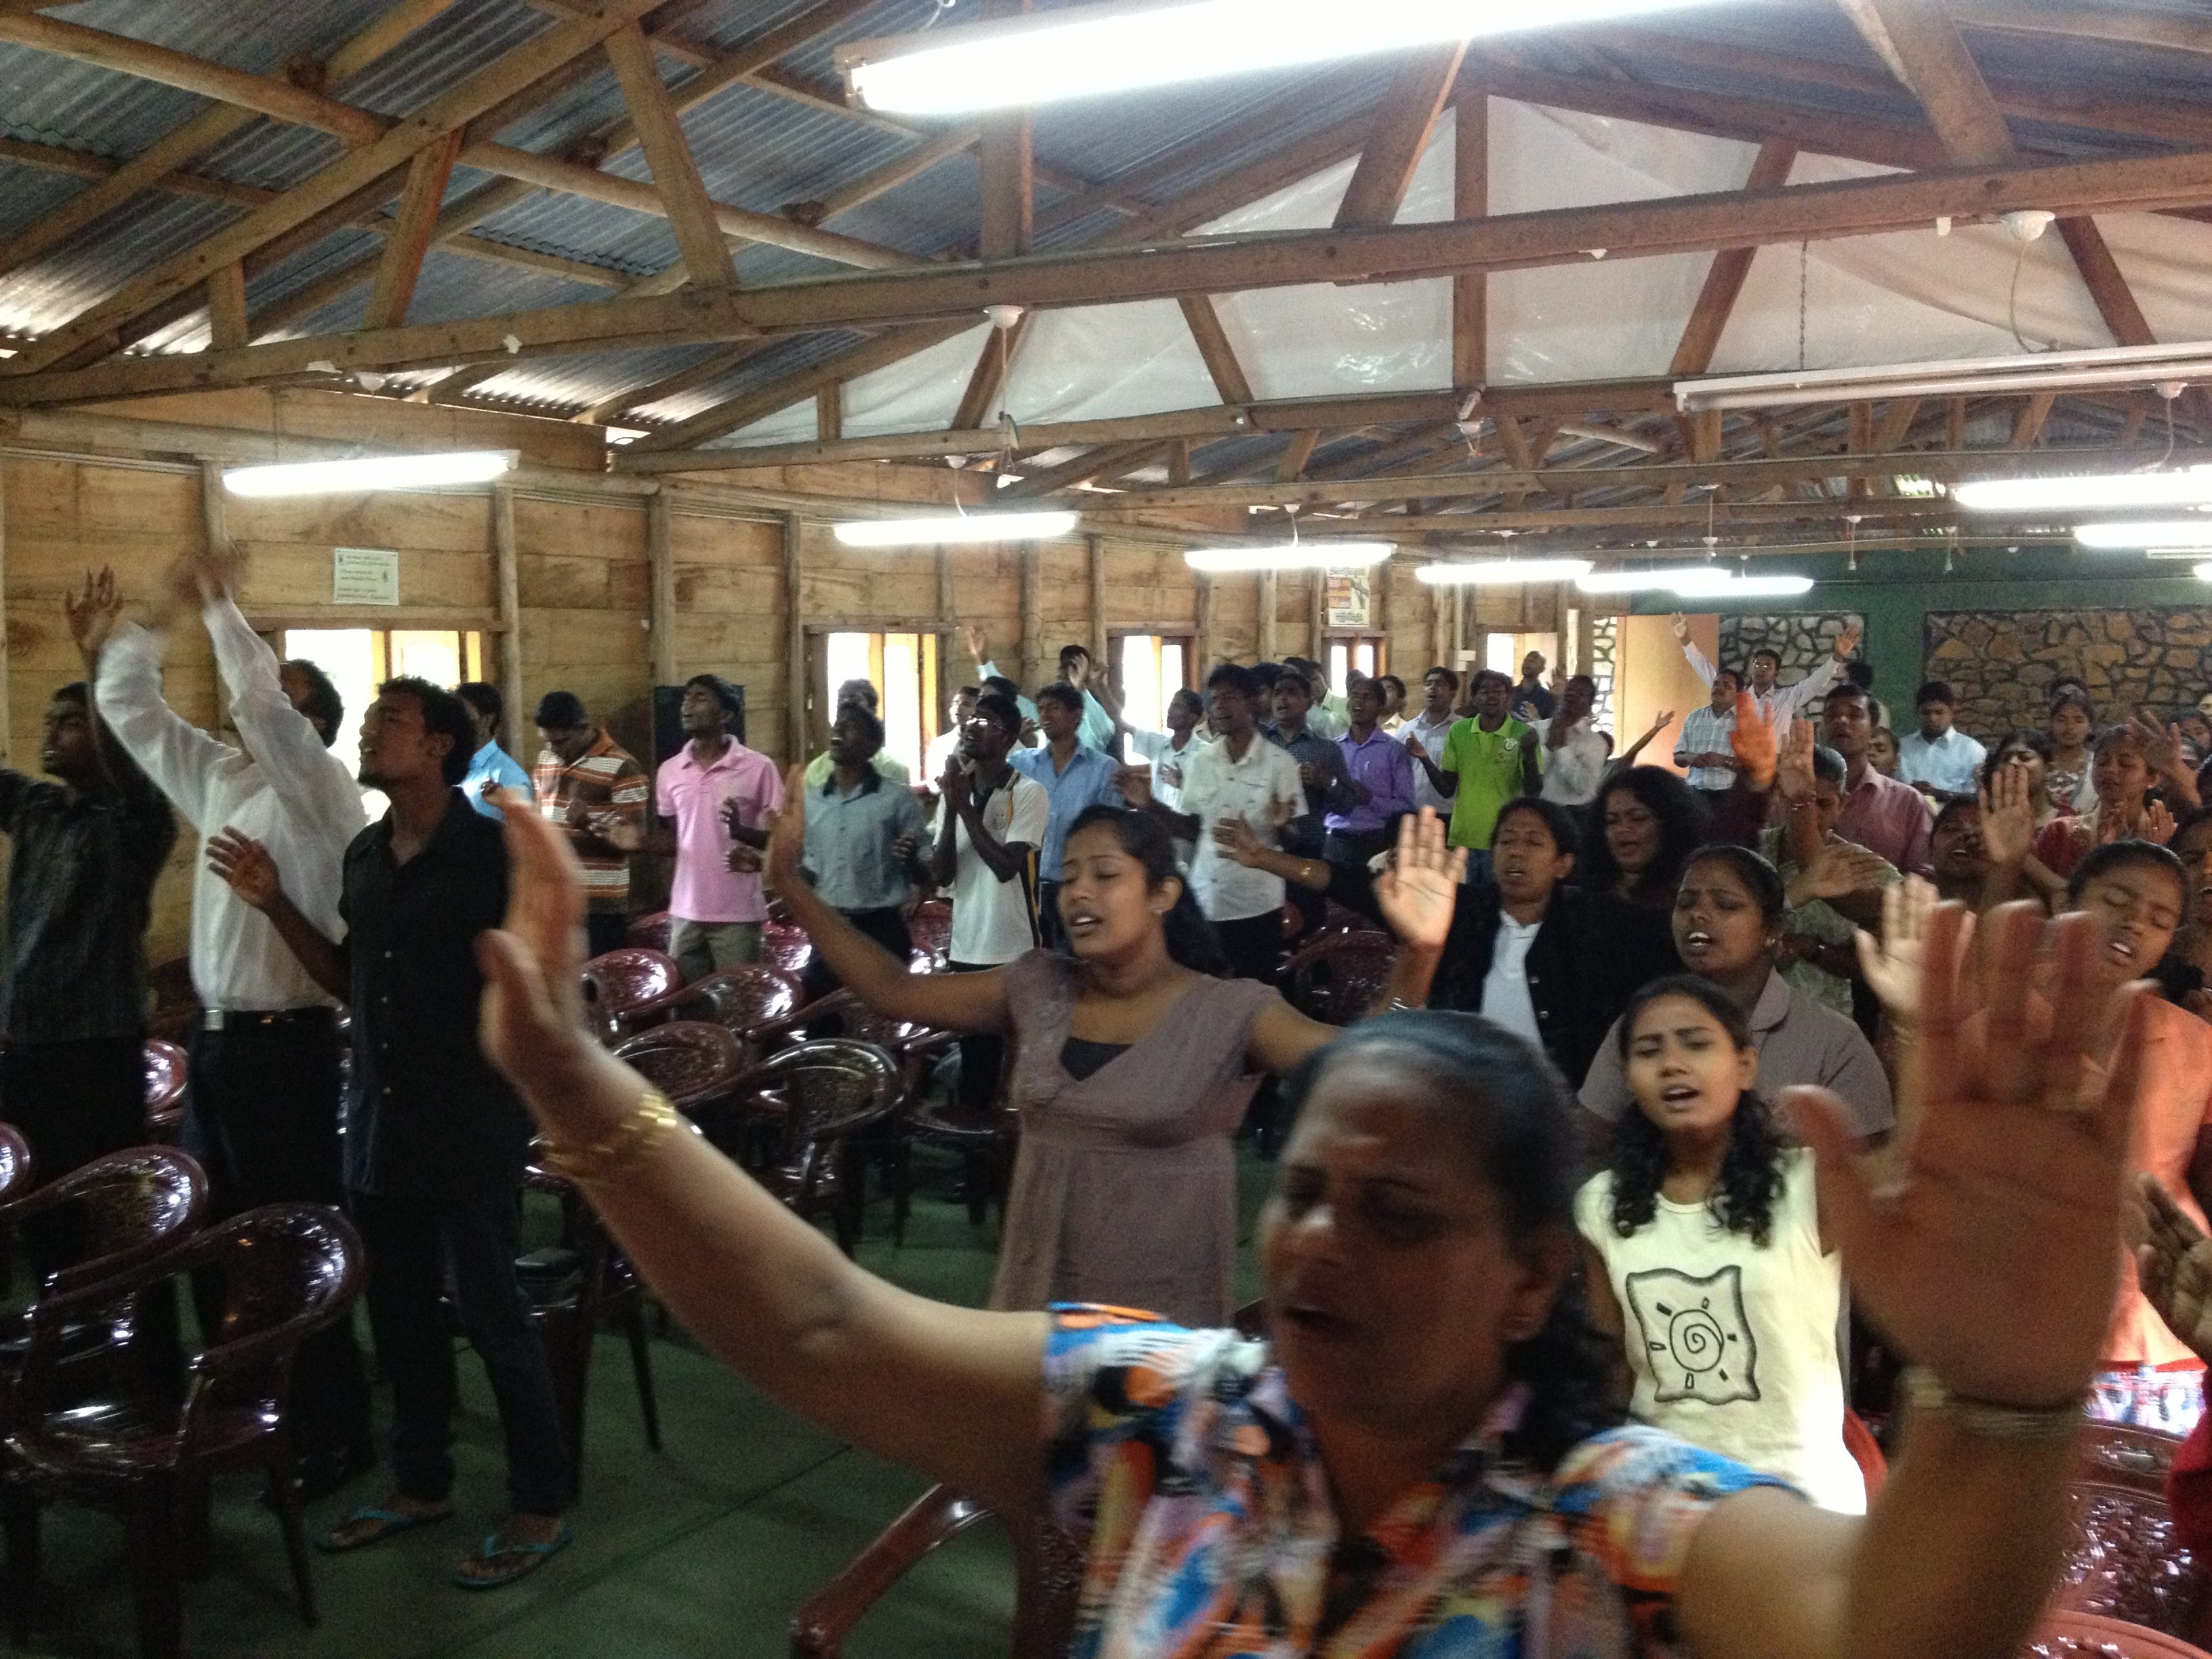 Sri Lanka Worship Conference in the Hill Country